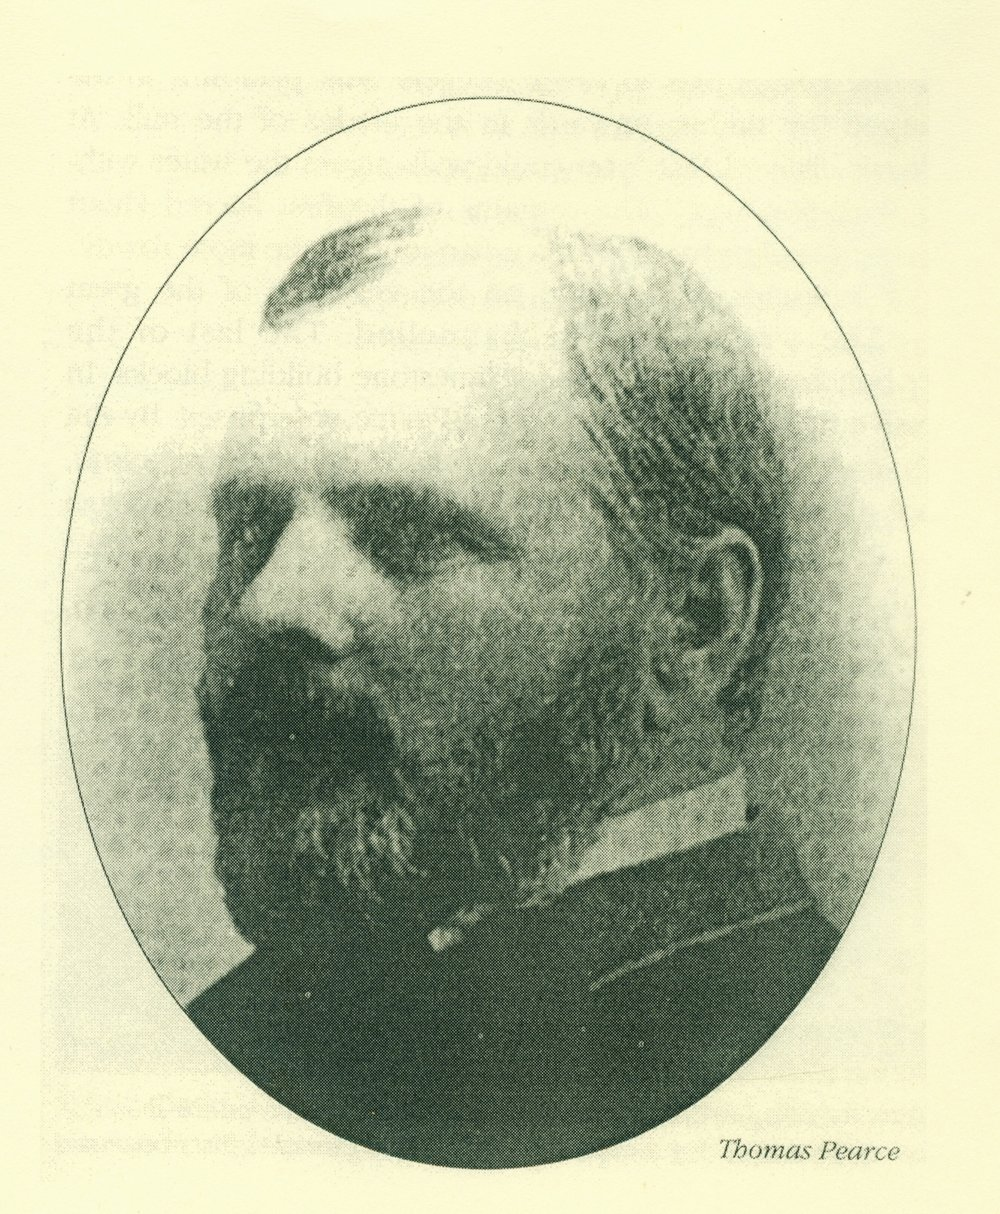 Thomas Pearce 1879